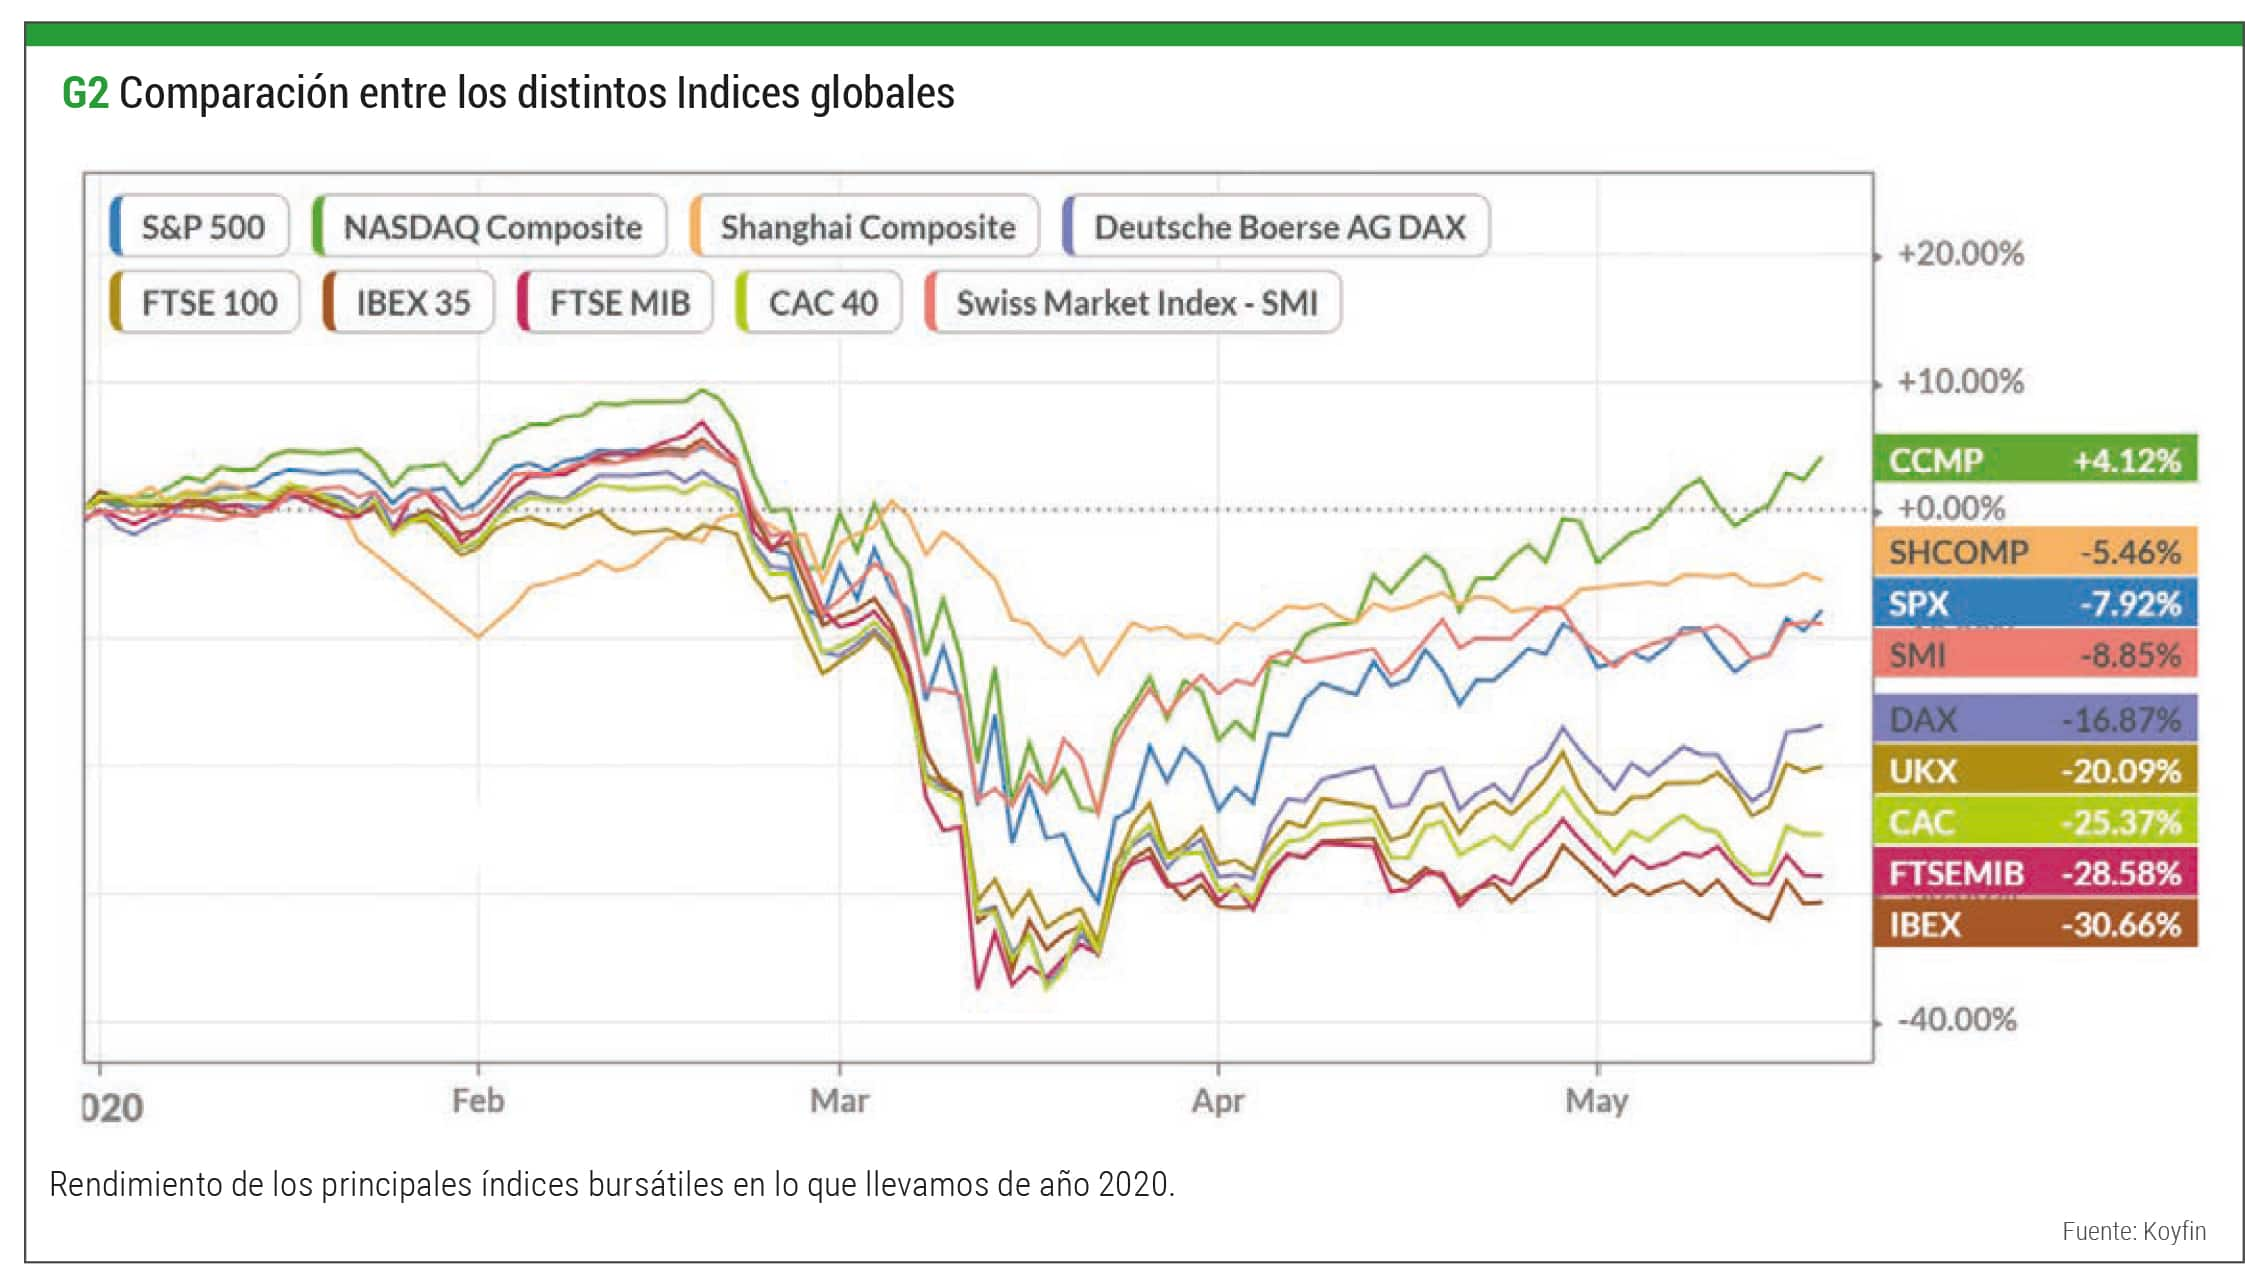 indices globales